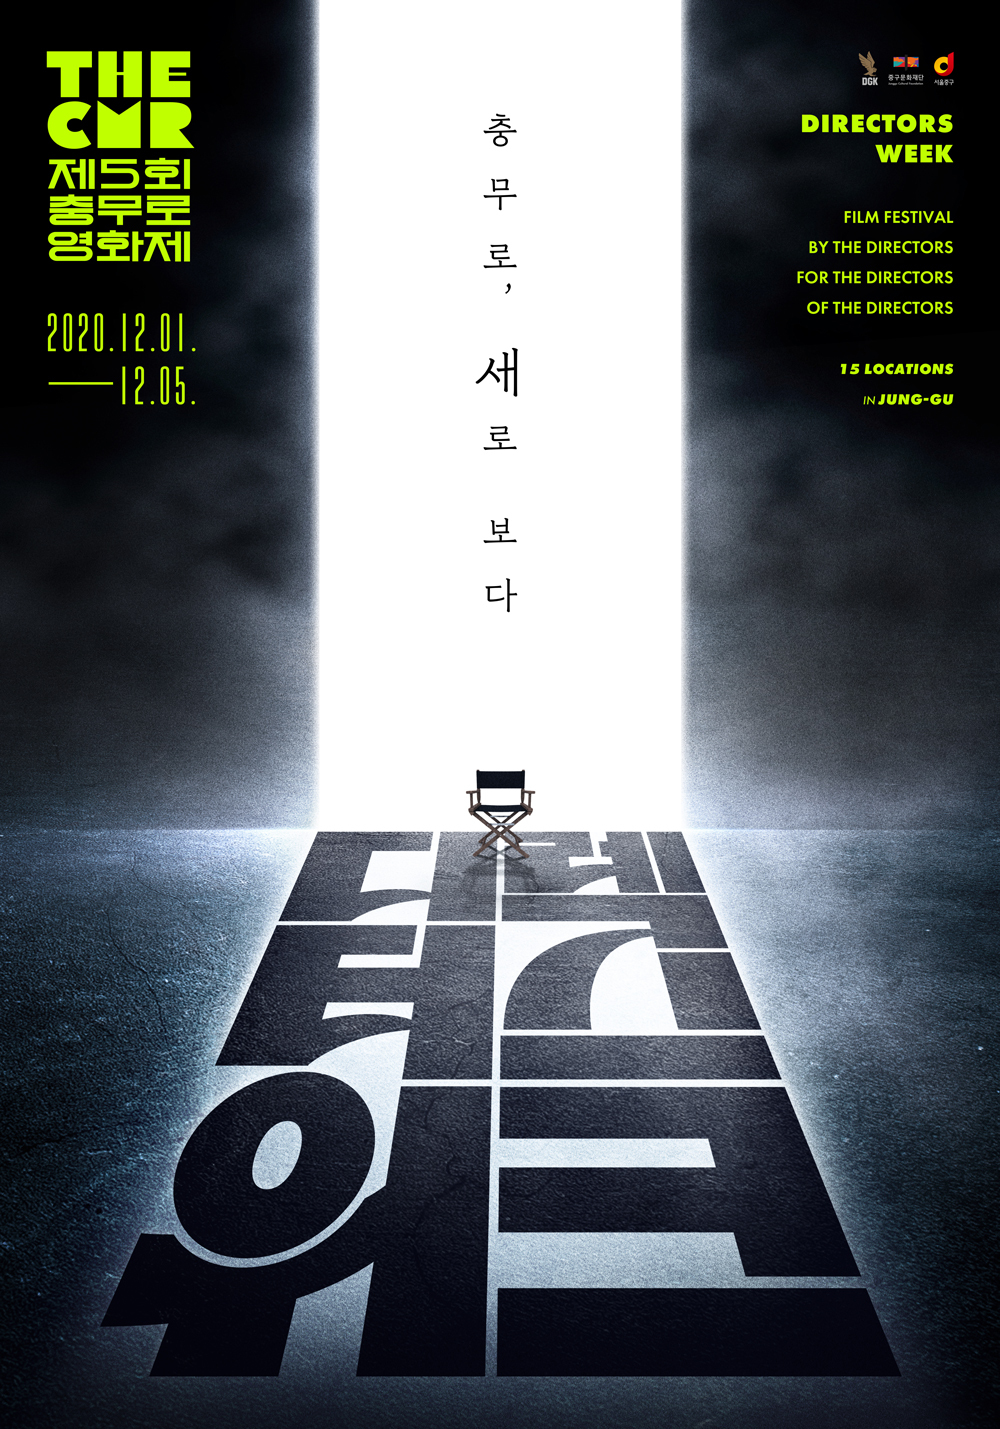 A poster for The CMR-Directors Week, a new film festival organized by and for film directors (Directors Guild of Korea)